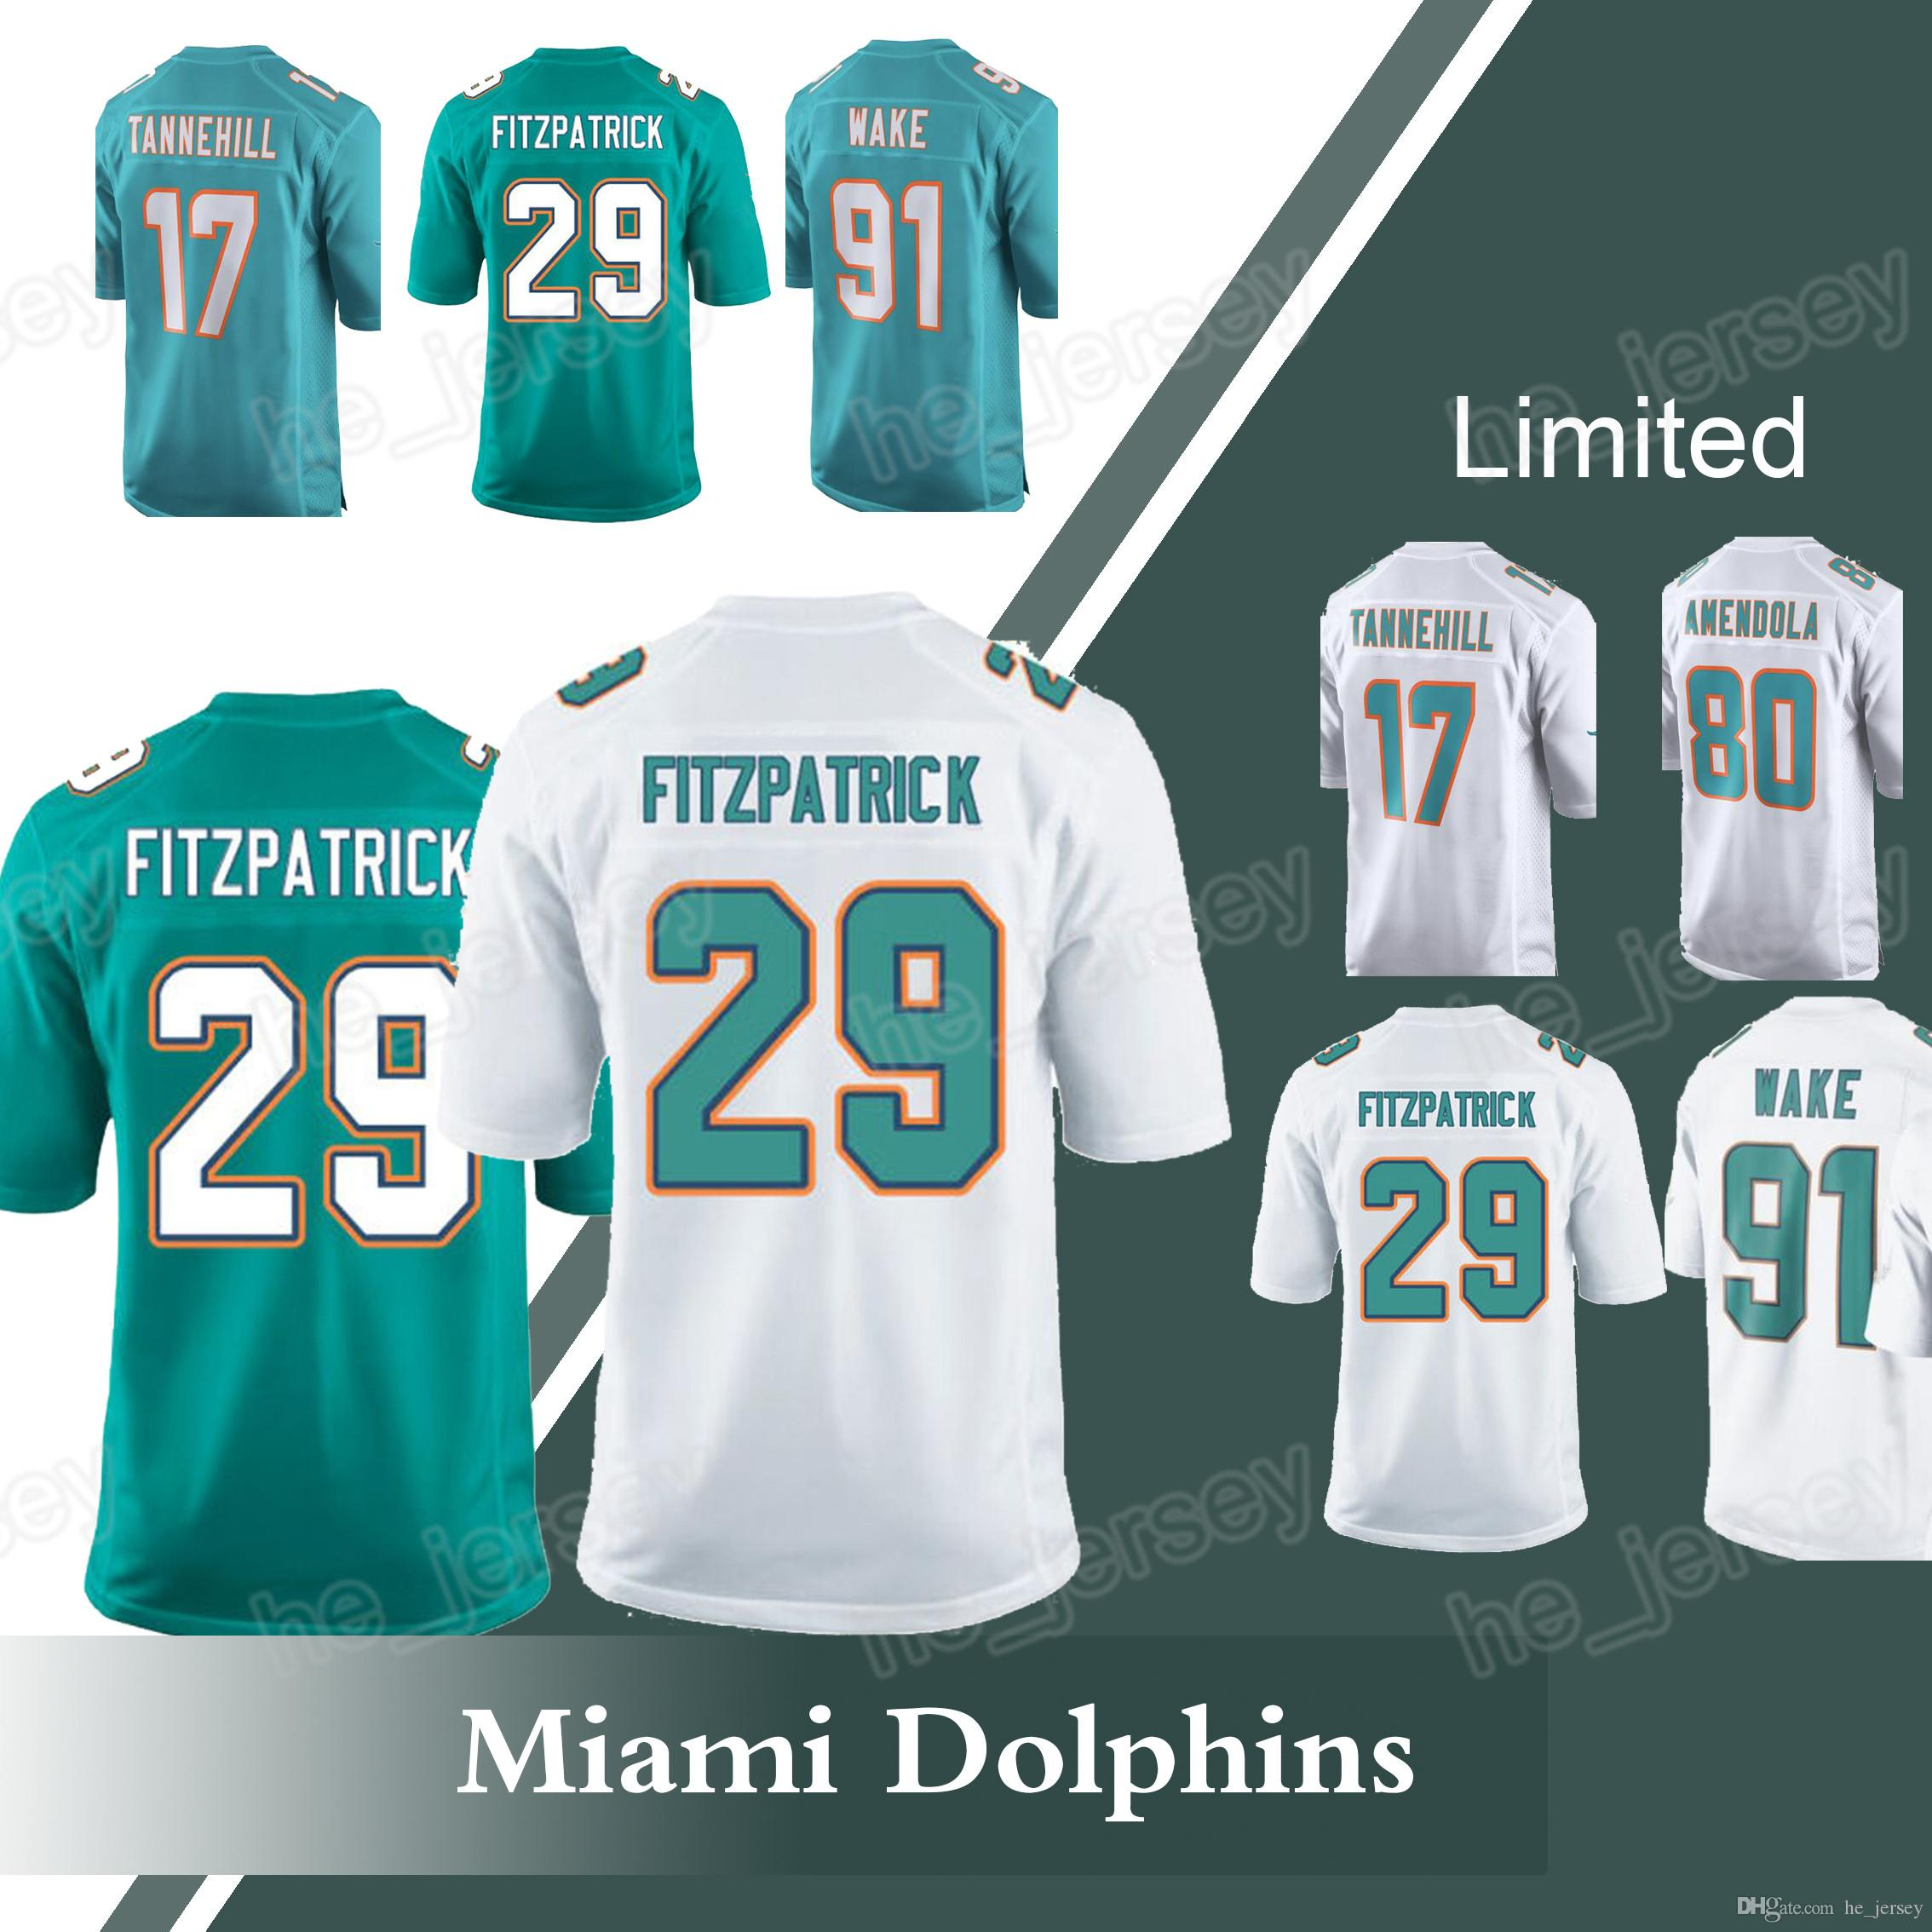 low priced 7a7ff f5e47 real miami dolphins jersey xxxl 60a25 b65fb